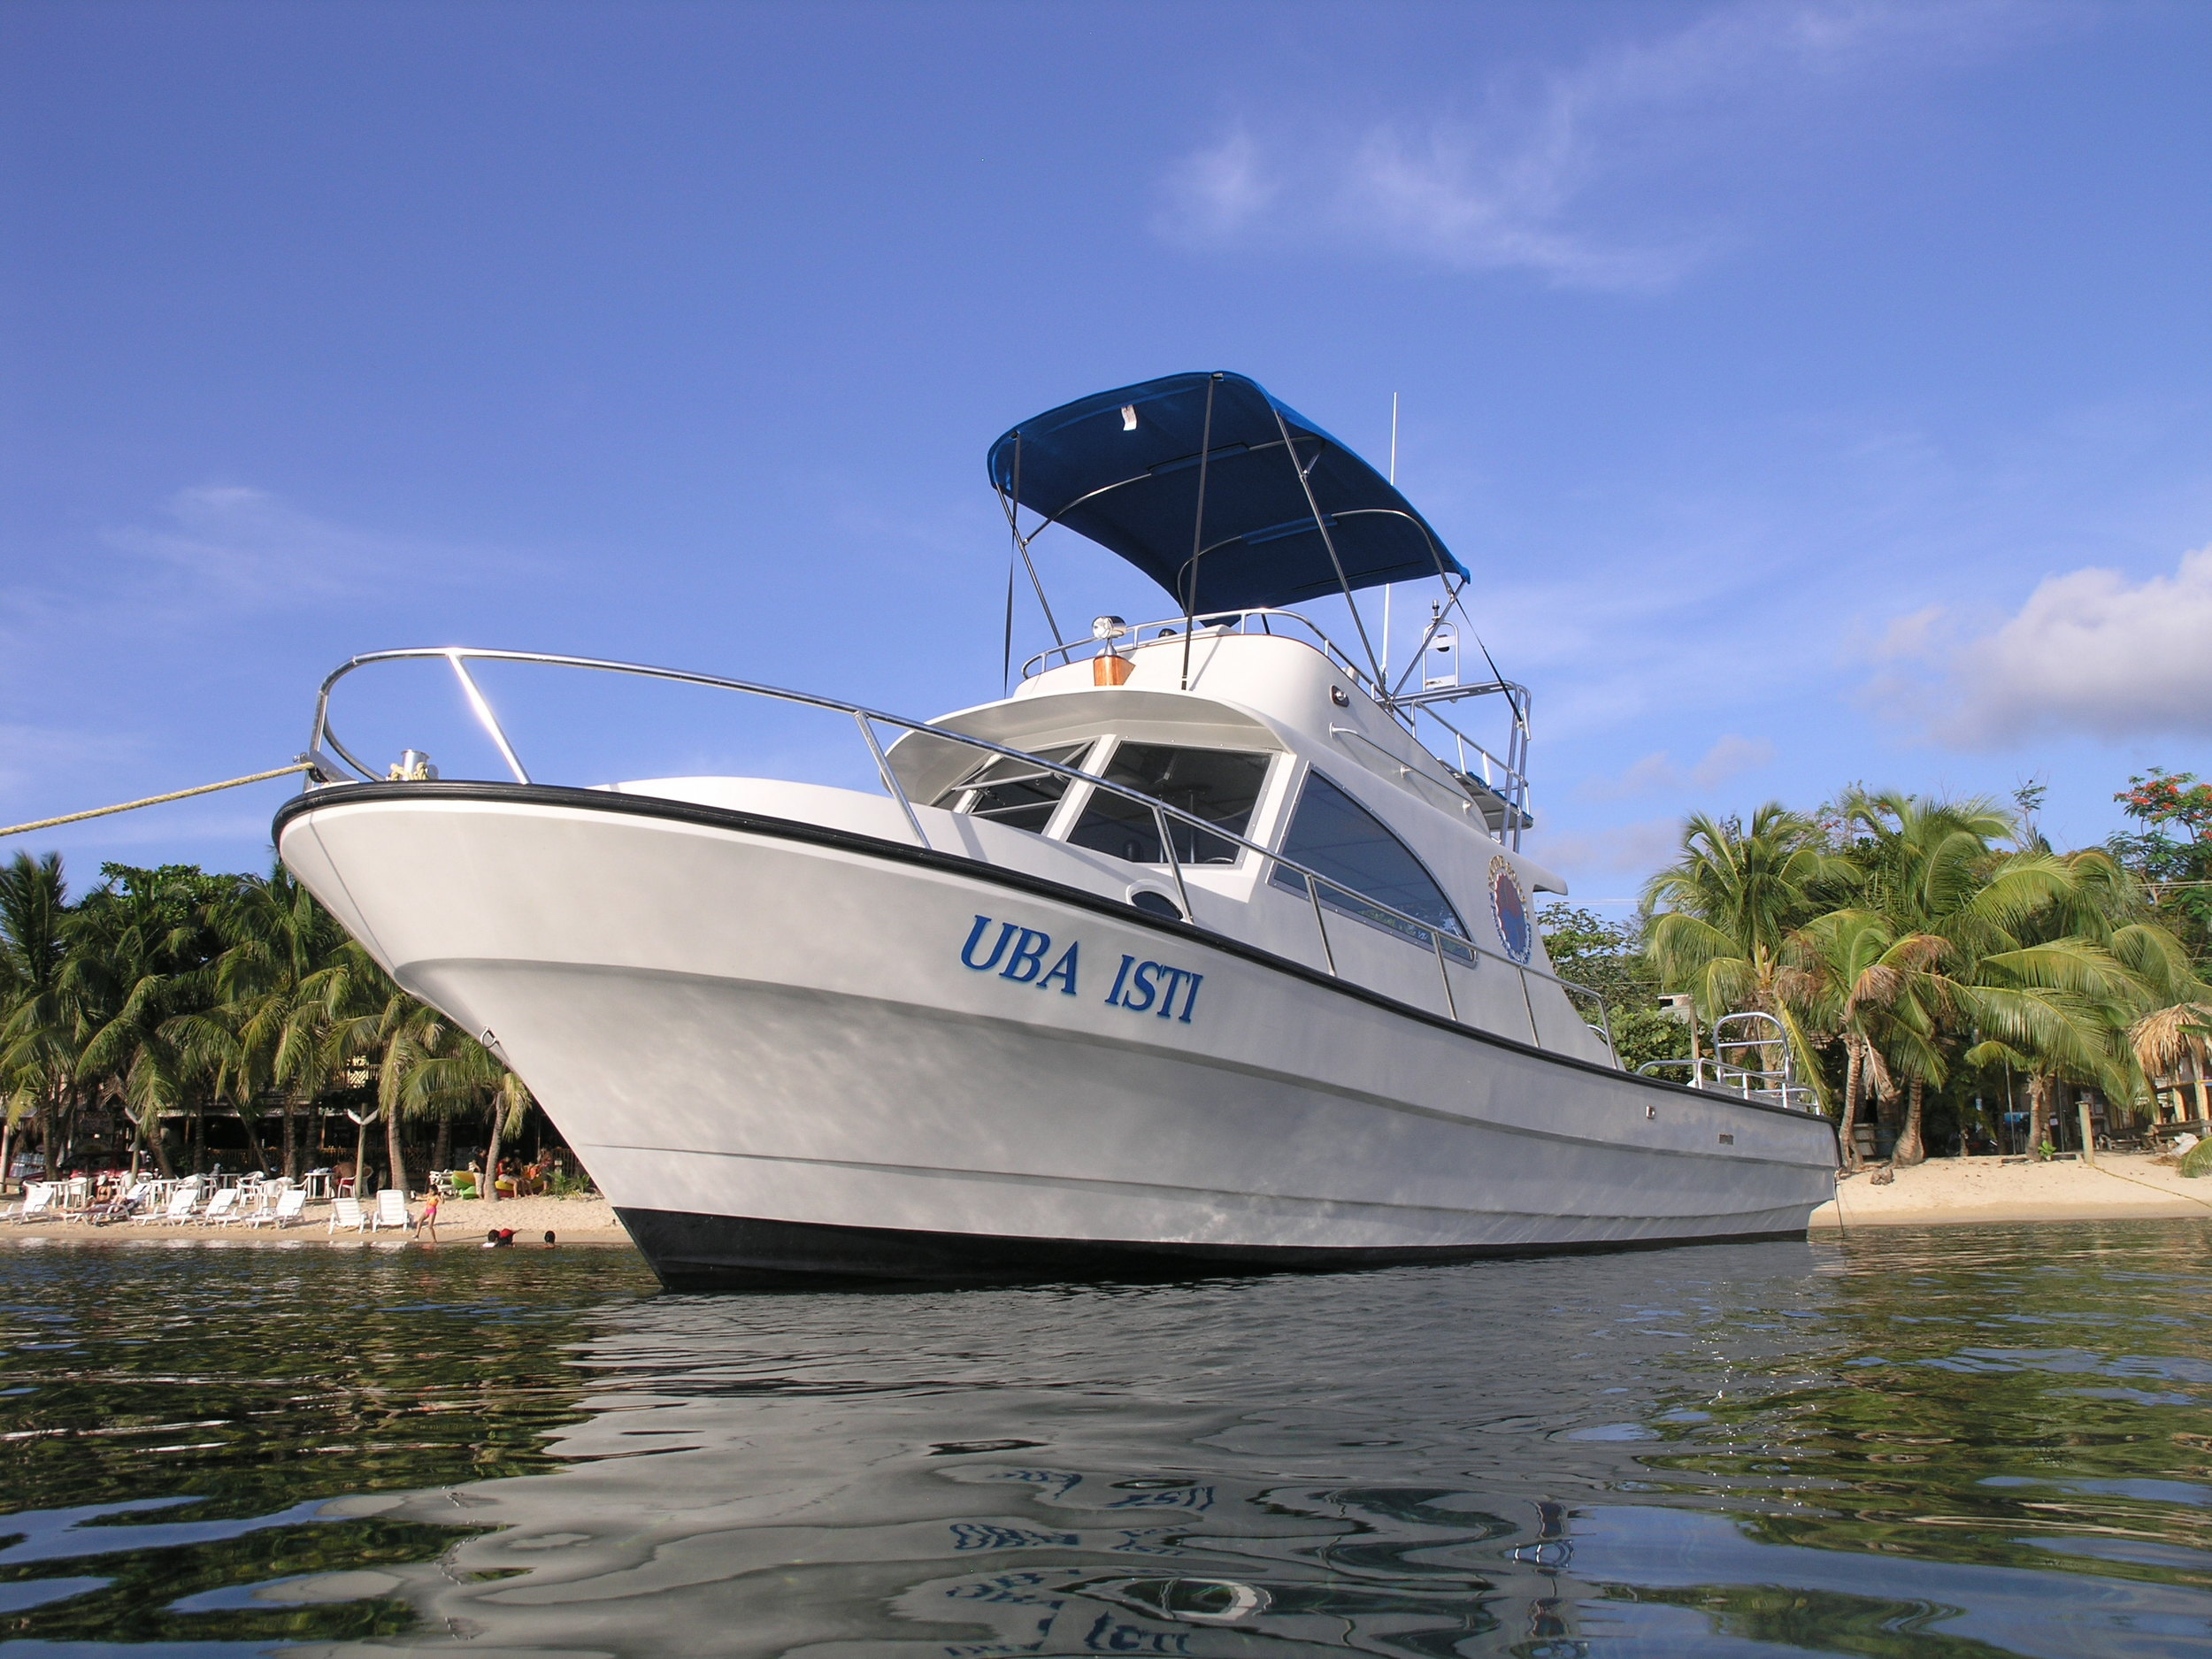 Best dive boat ever!